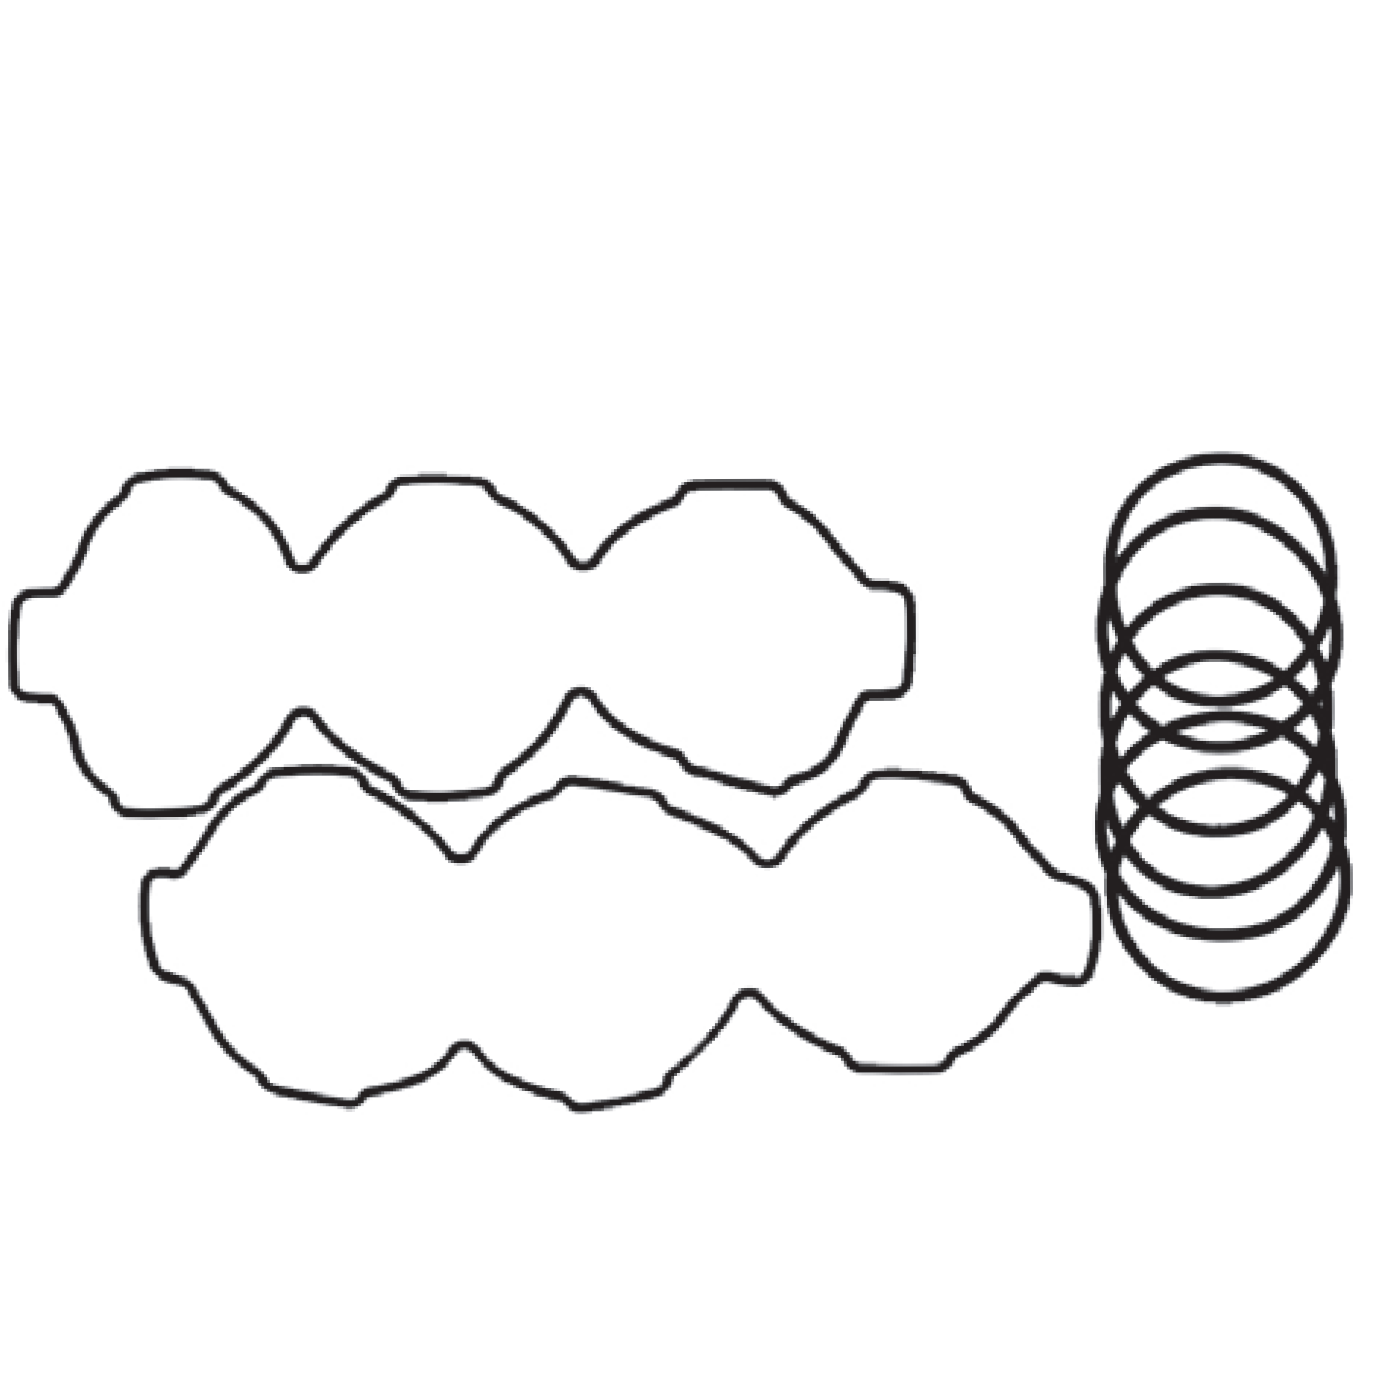 category-merc-head-o-ring-kit.png